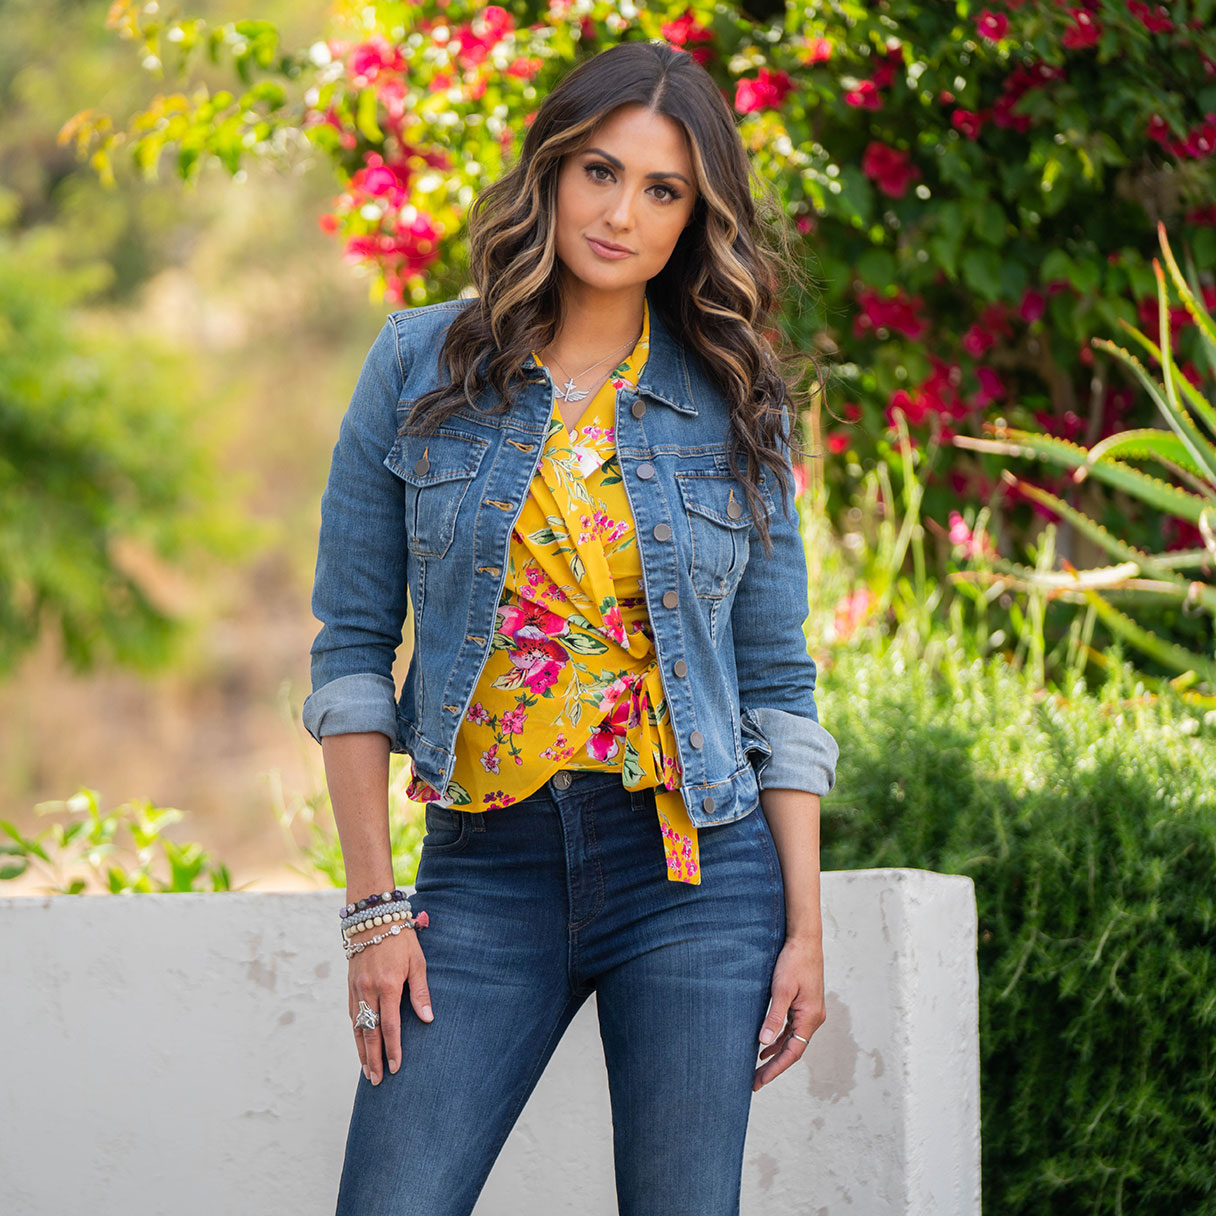 KATIE CLEARY - ANIMAL ADVOCATE